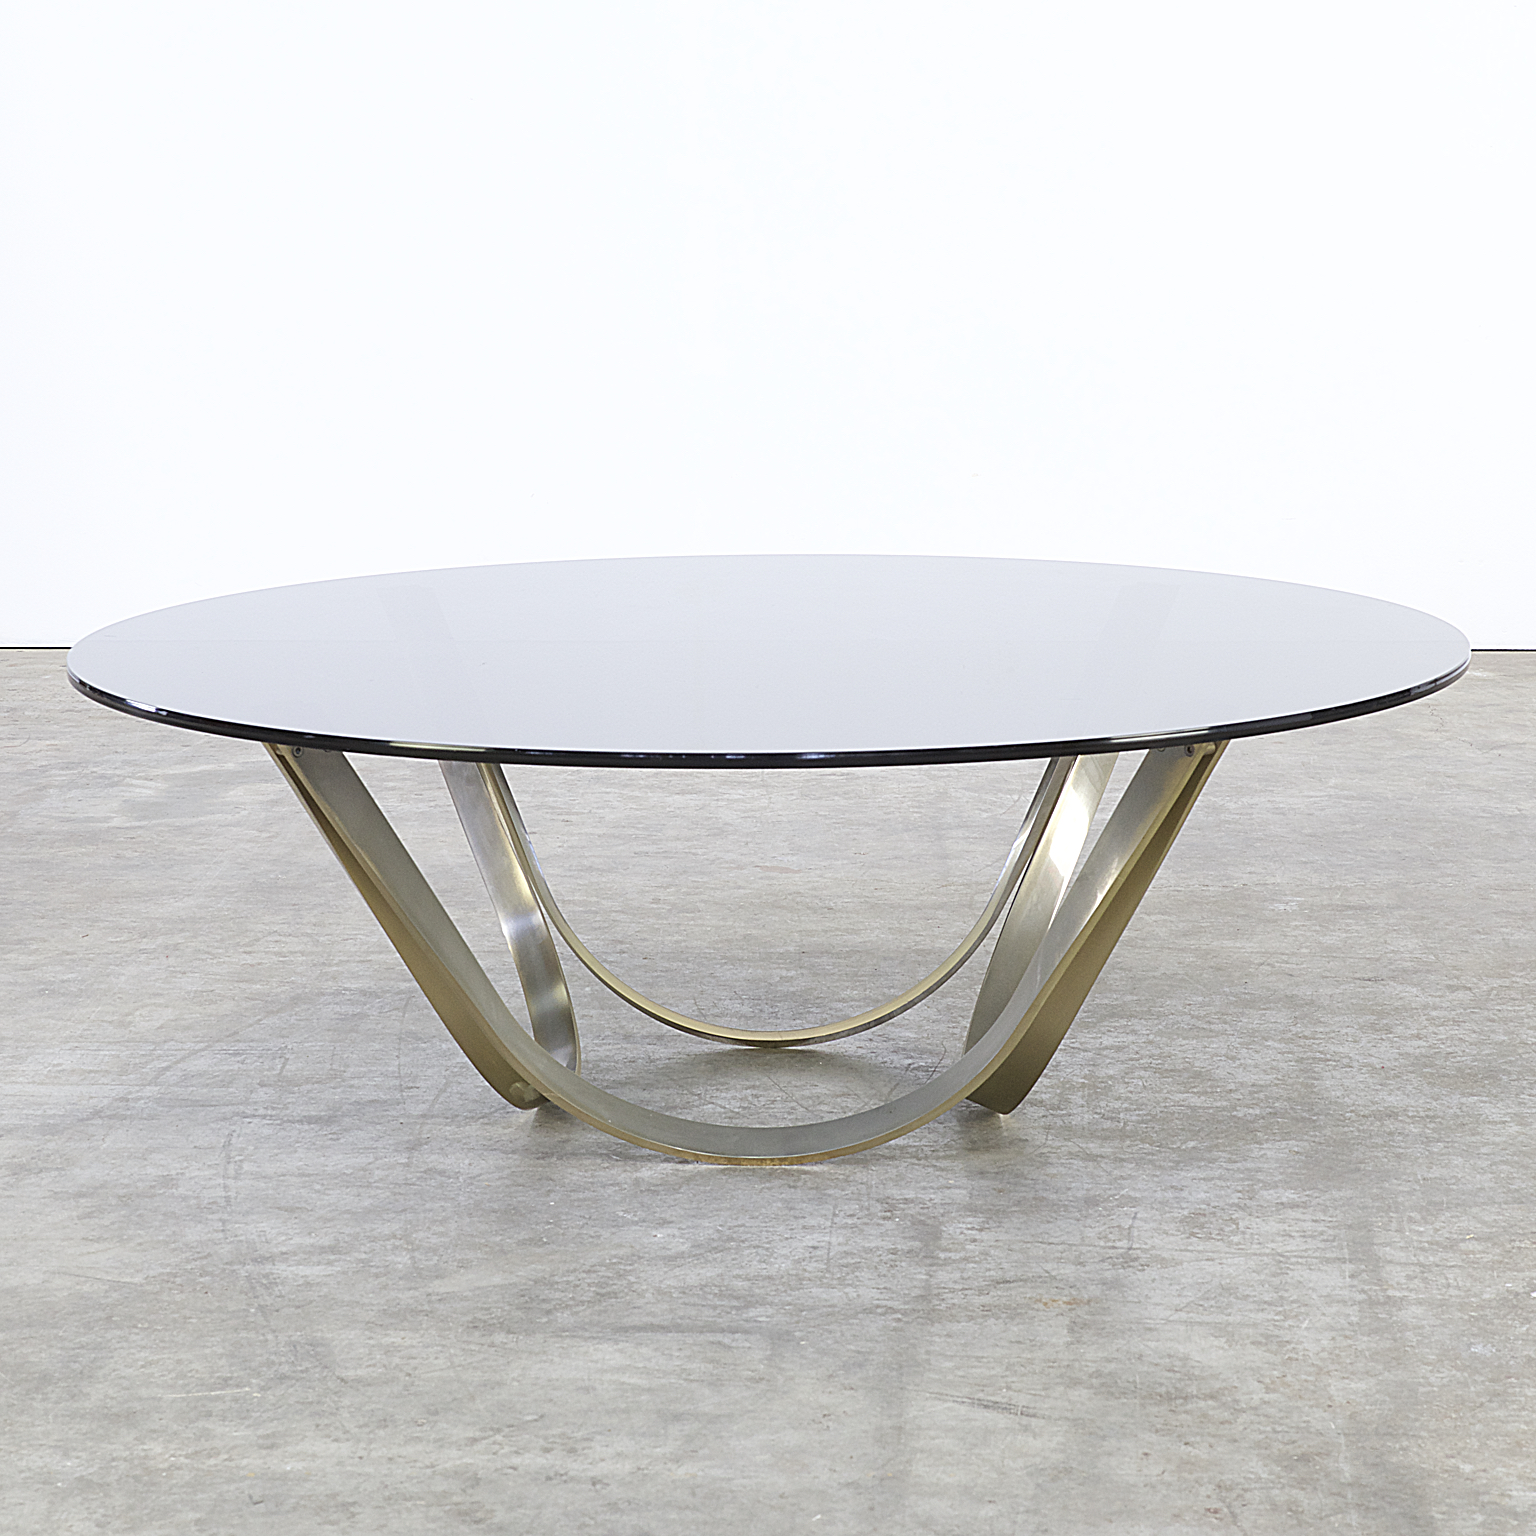 70s Roger Sprunger Brass And Glass Coffee Table For Dunbar Furniture Barbmama